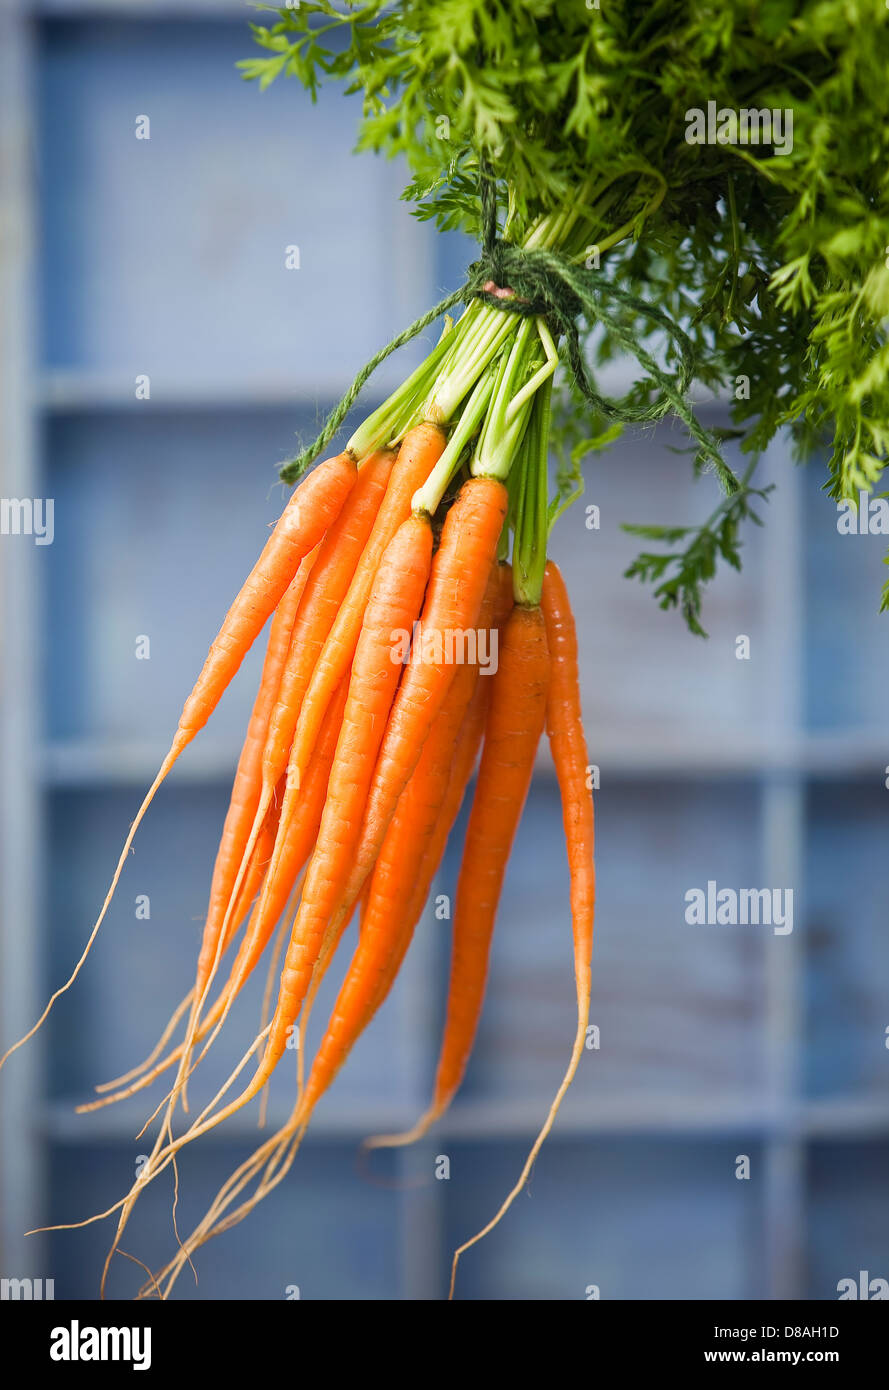 A bunch of fresh Dutch carrots with green tops still in tact, tied together with green string. - Stock Image